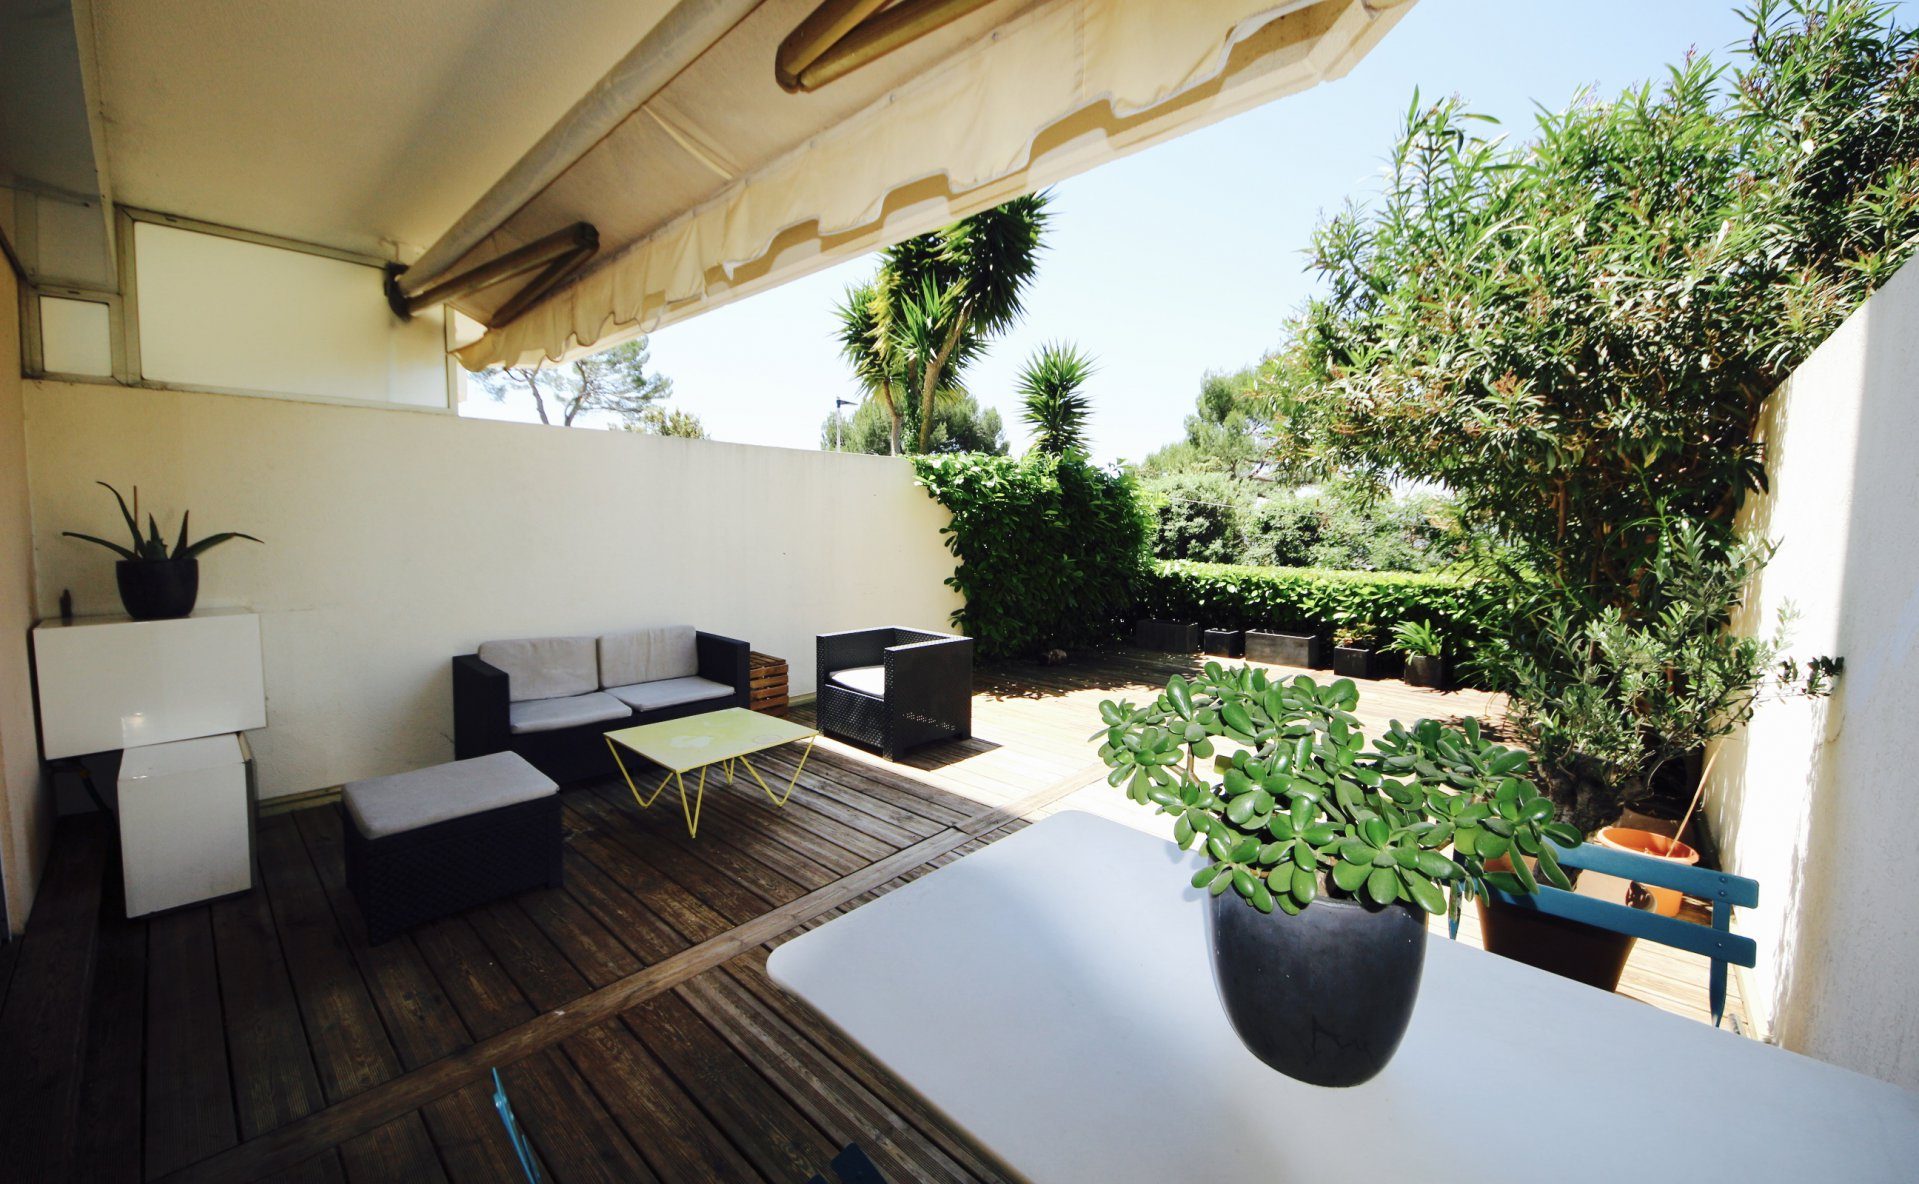 Le Cannet/Mougins, very nice one bedroom apartment 48sqm and terrace 40sqm at 15mn from the famous Croisette